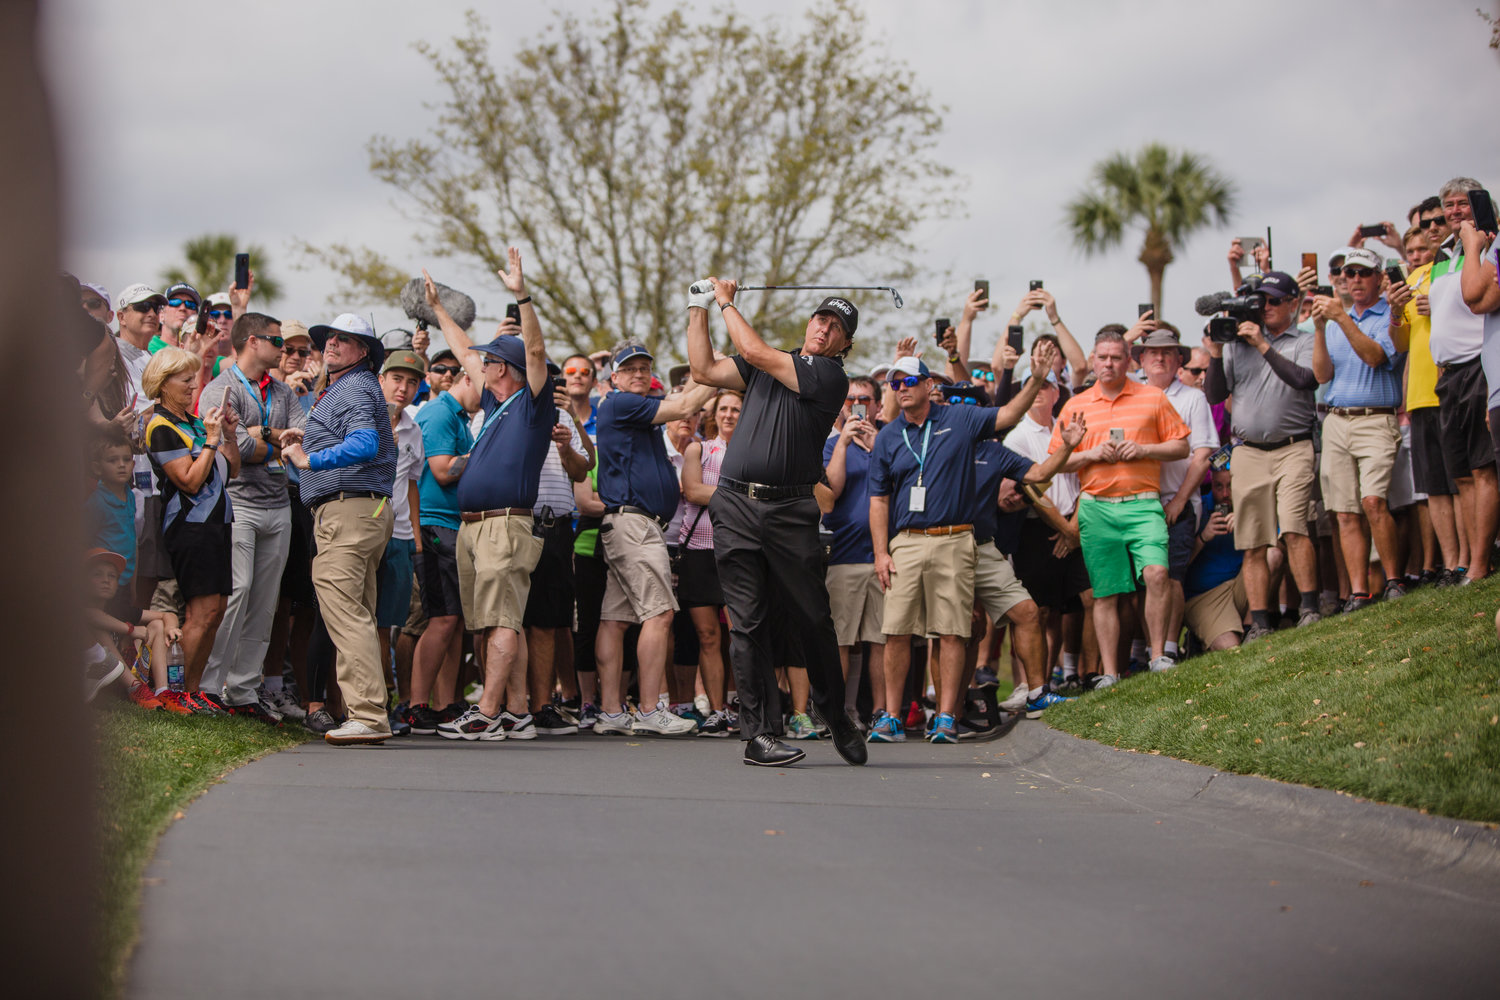 Phil Mickelson hits a shot from the cart path at THE PLAYERS. He's 2-over par after the first round.